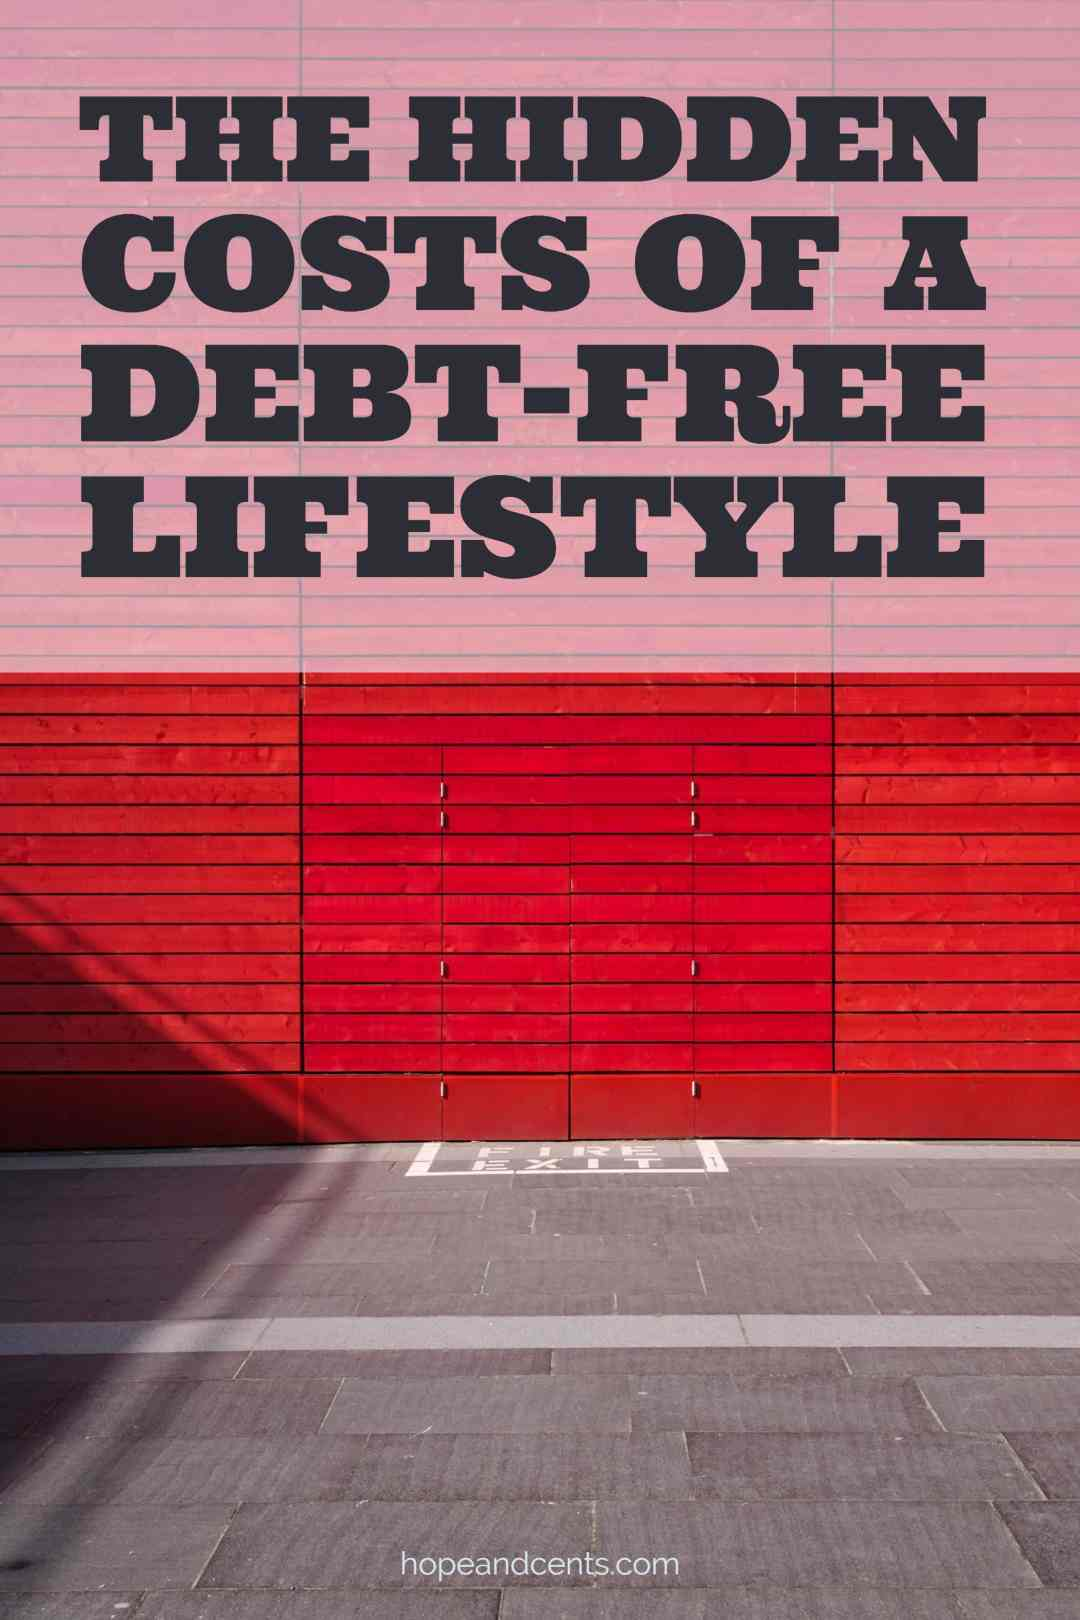 Are you living a debt-free lifestyle? You may have already learned that it comes with a price. The question is, is it worth it?